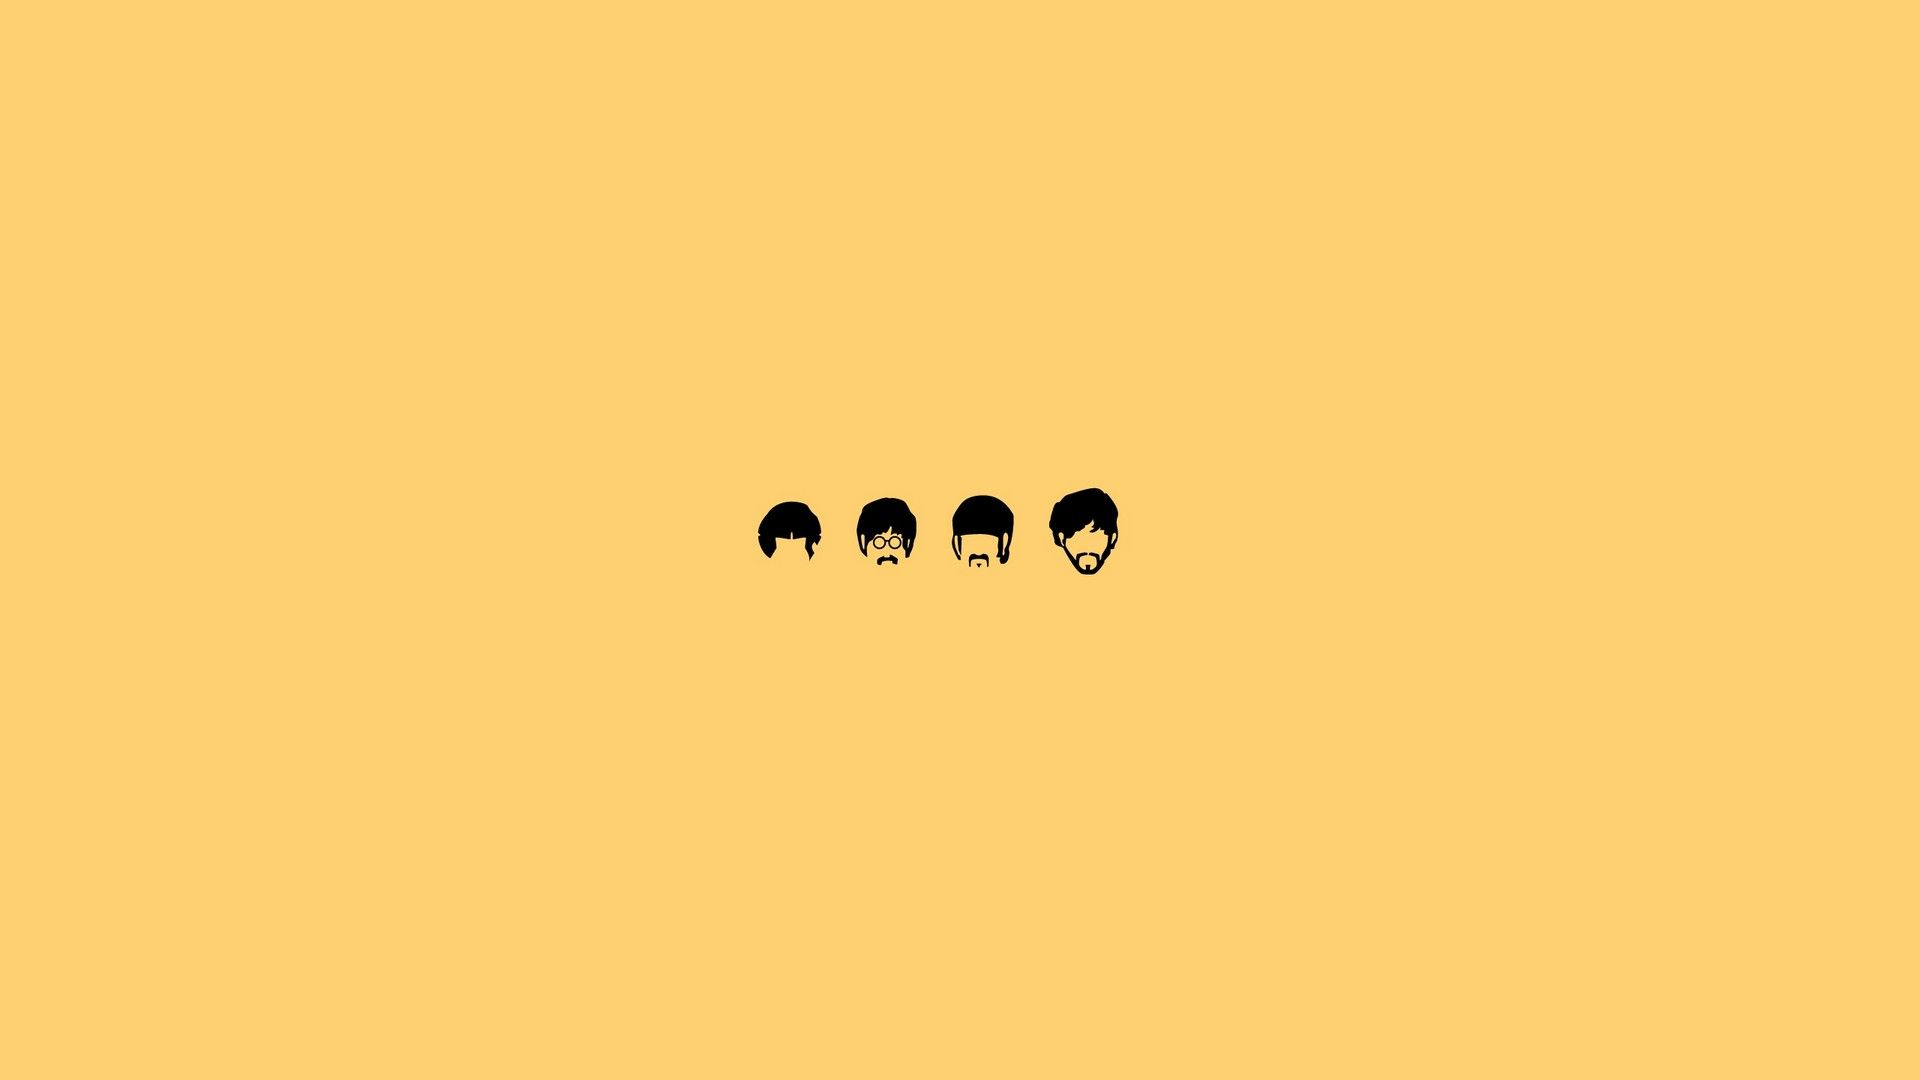 Desktop Wallpaper Yellow Theme Best Wallpaper HD Beatles 1920x1080